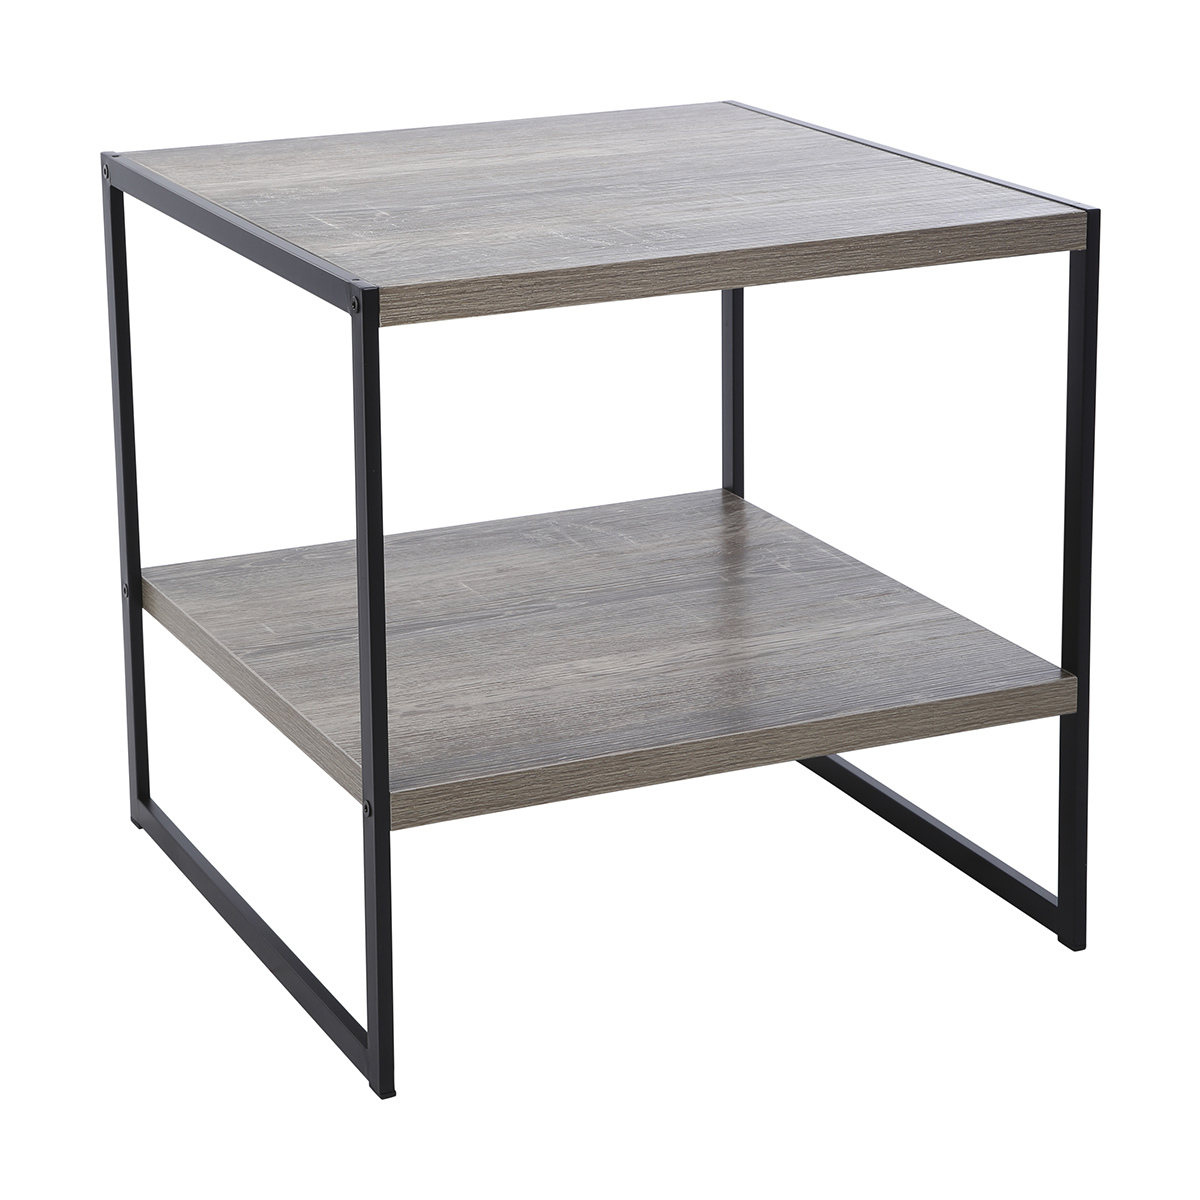 Outdoor Side Tables Australia Industrial Side Table Kmart